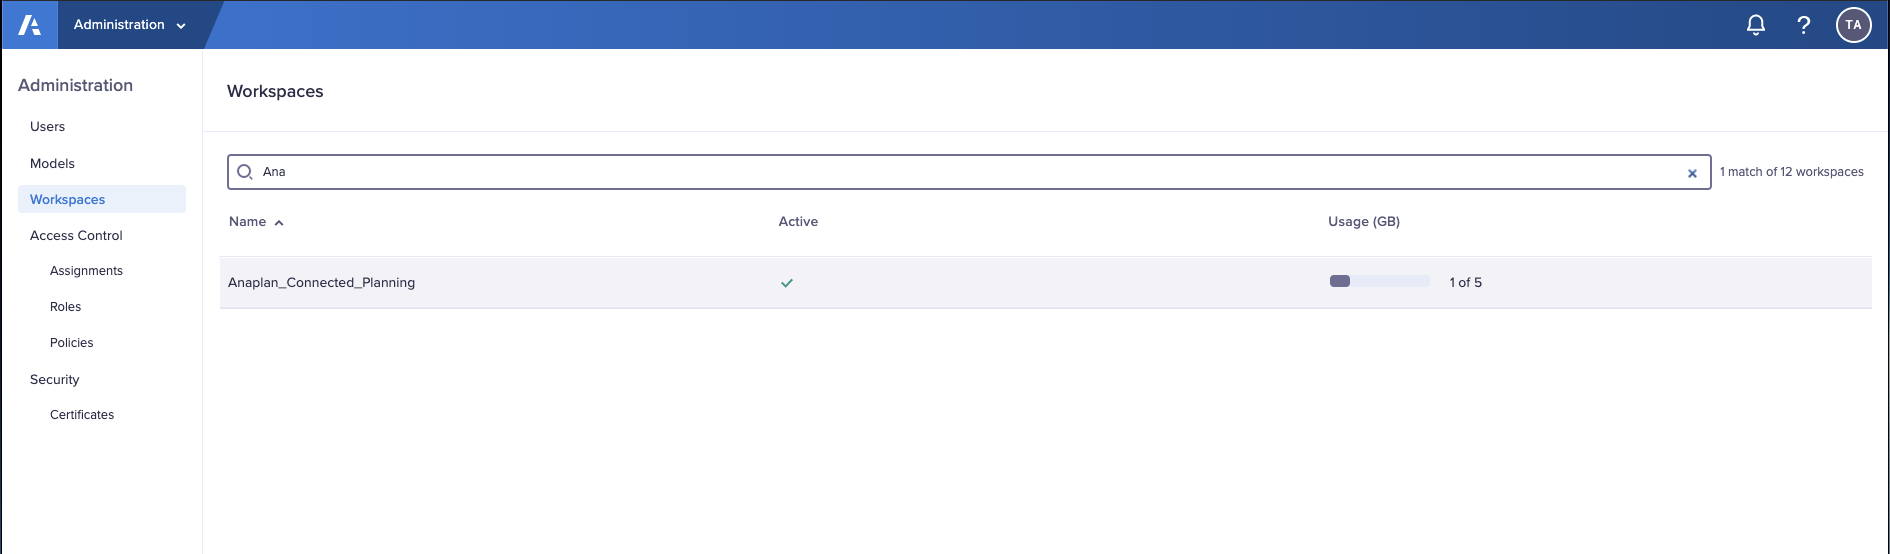 """The search function on the Workspaces tab in the Administration console.  The search filters results based on the letters """"Ana"""" to show only the Anaplan_Connected_Planning entry."""